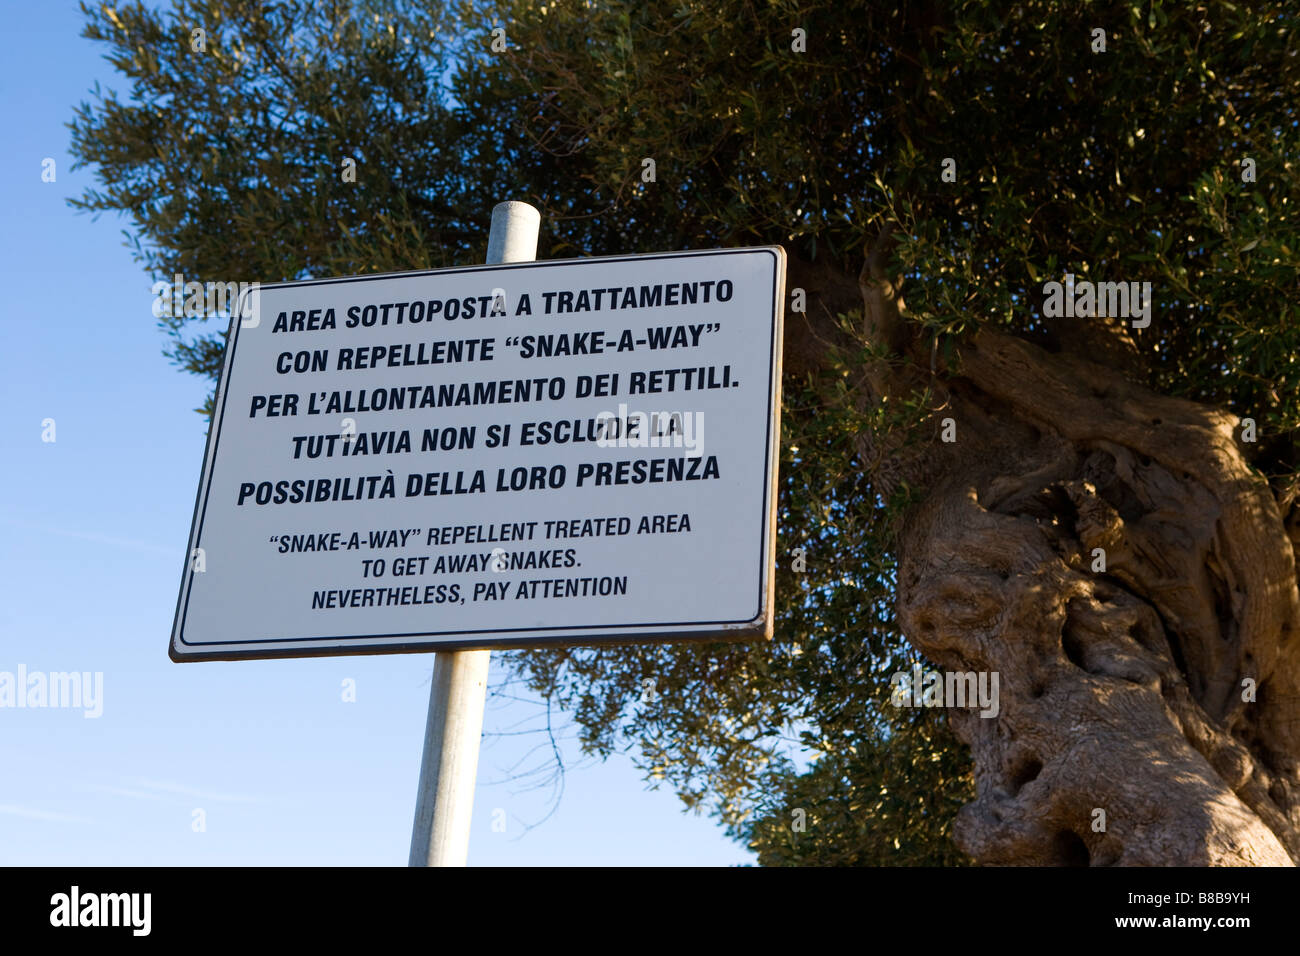 Beware of snakes sign Egnazia Bronze age Greek and Roman excavations Puglia Italy - Stock Image